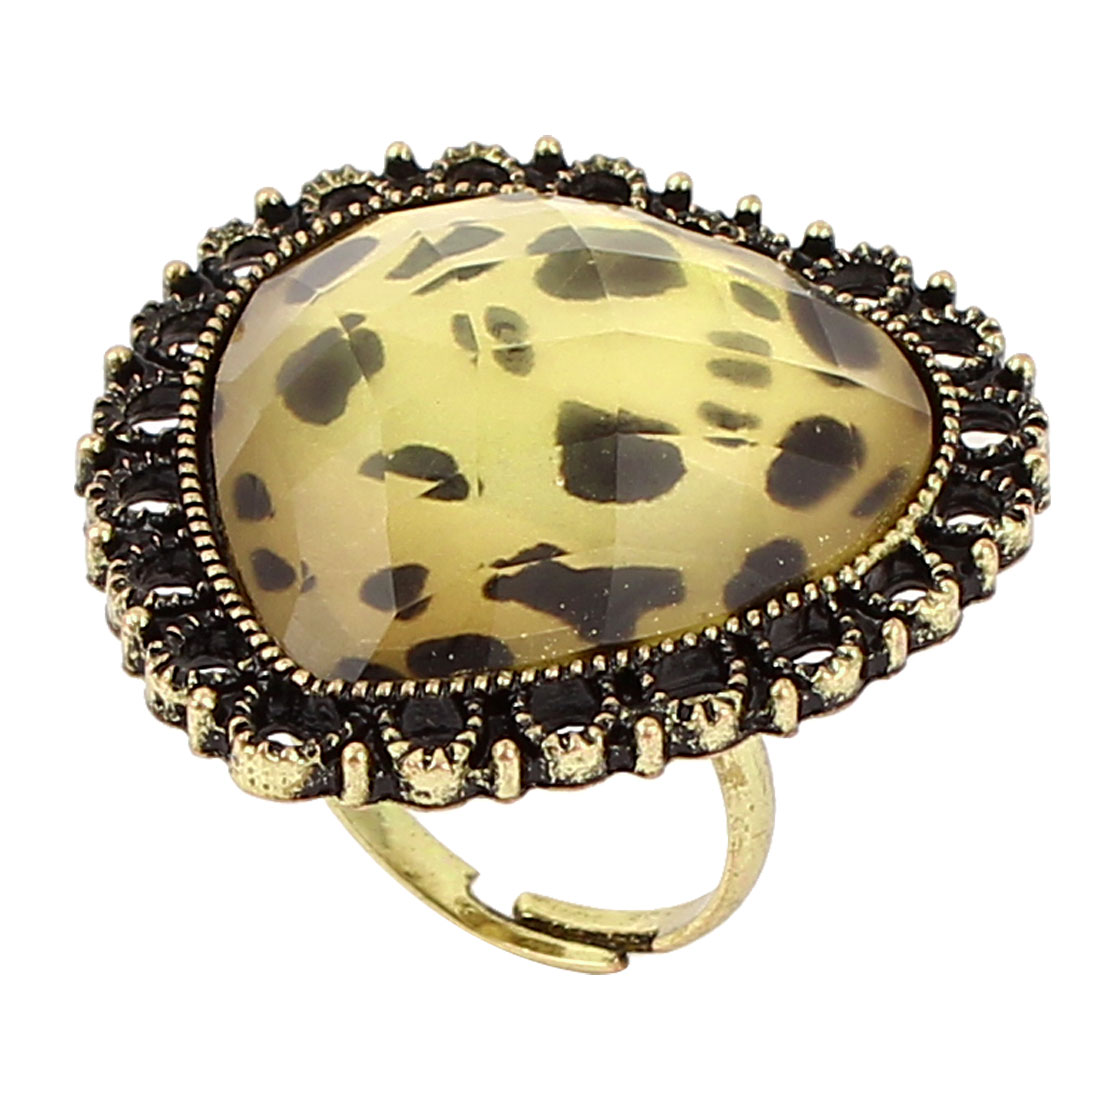 Bronze Tone Heart Design Leopard Print Round Case Finger Ring US 6 3/4 for Lady